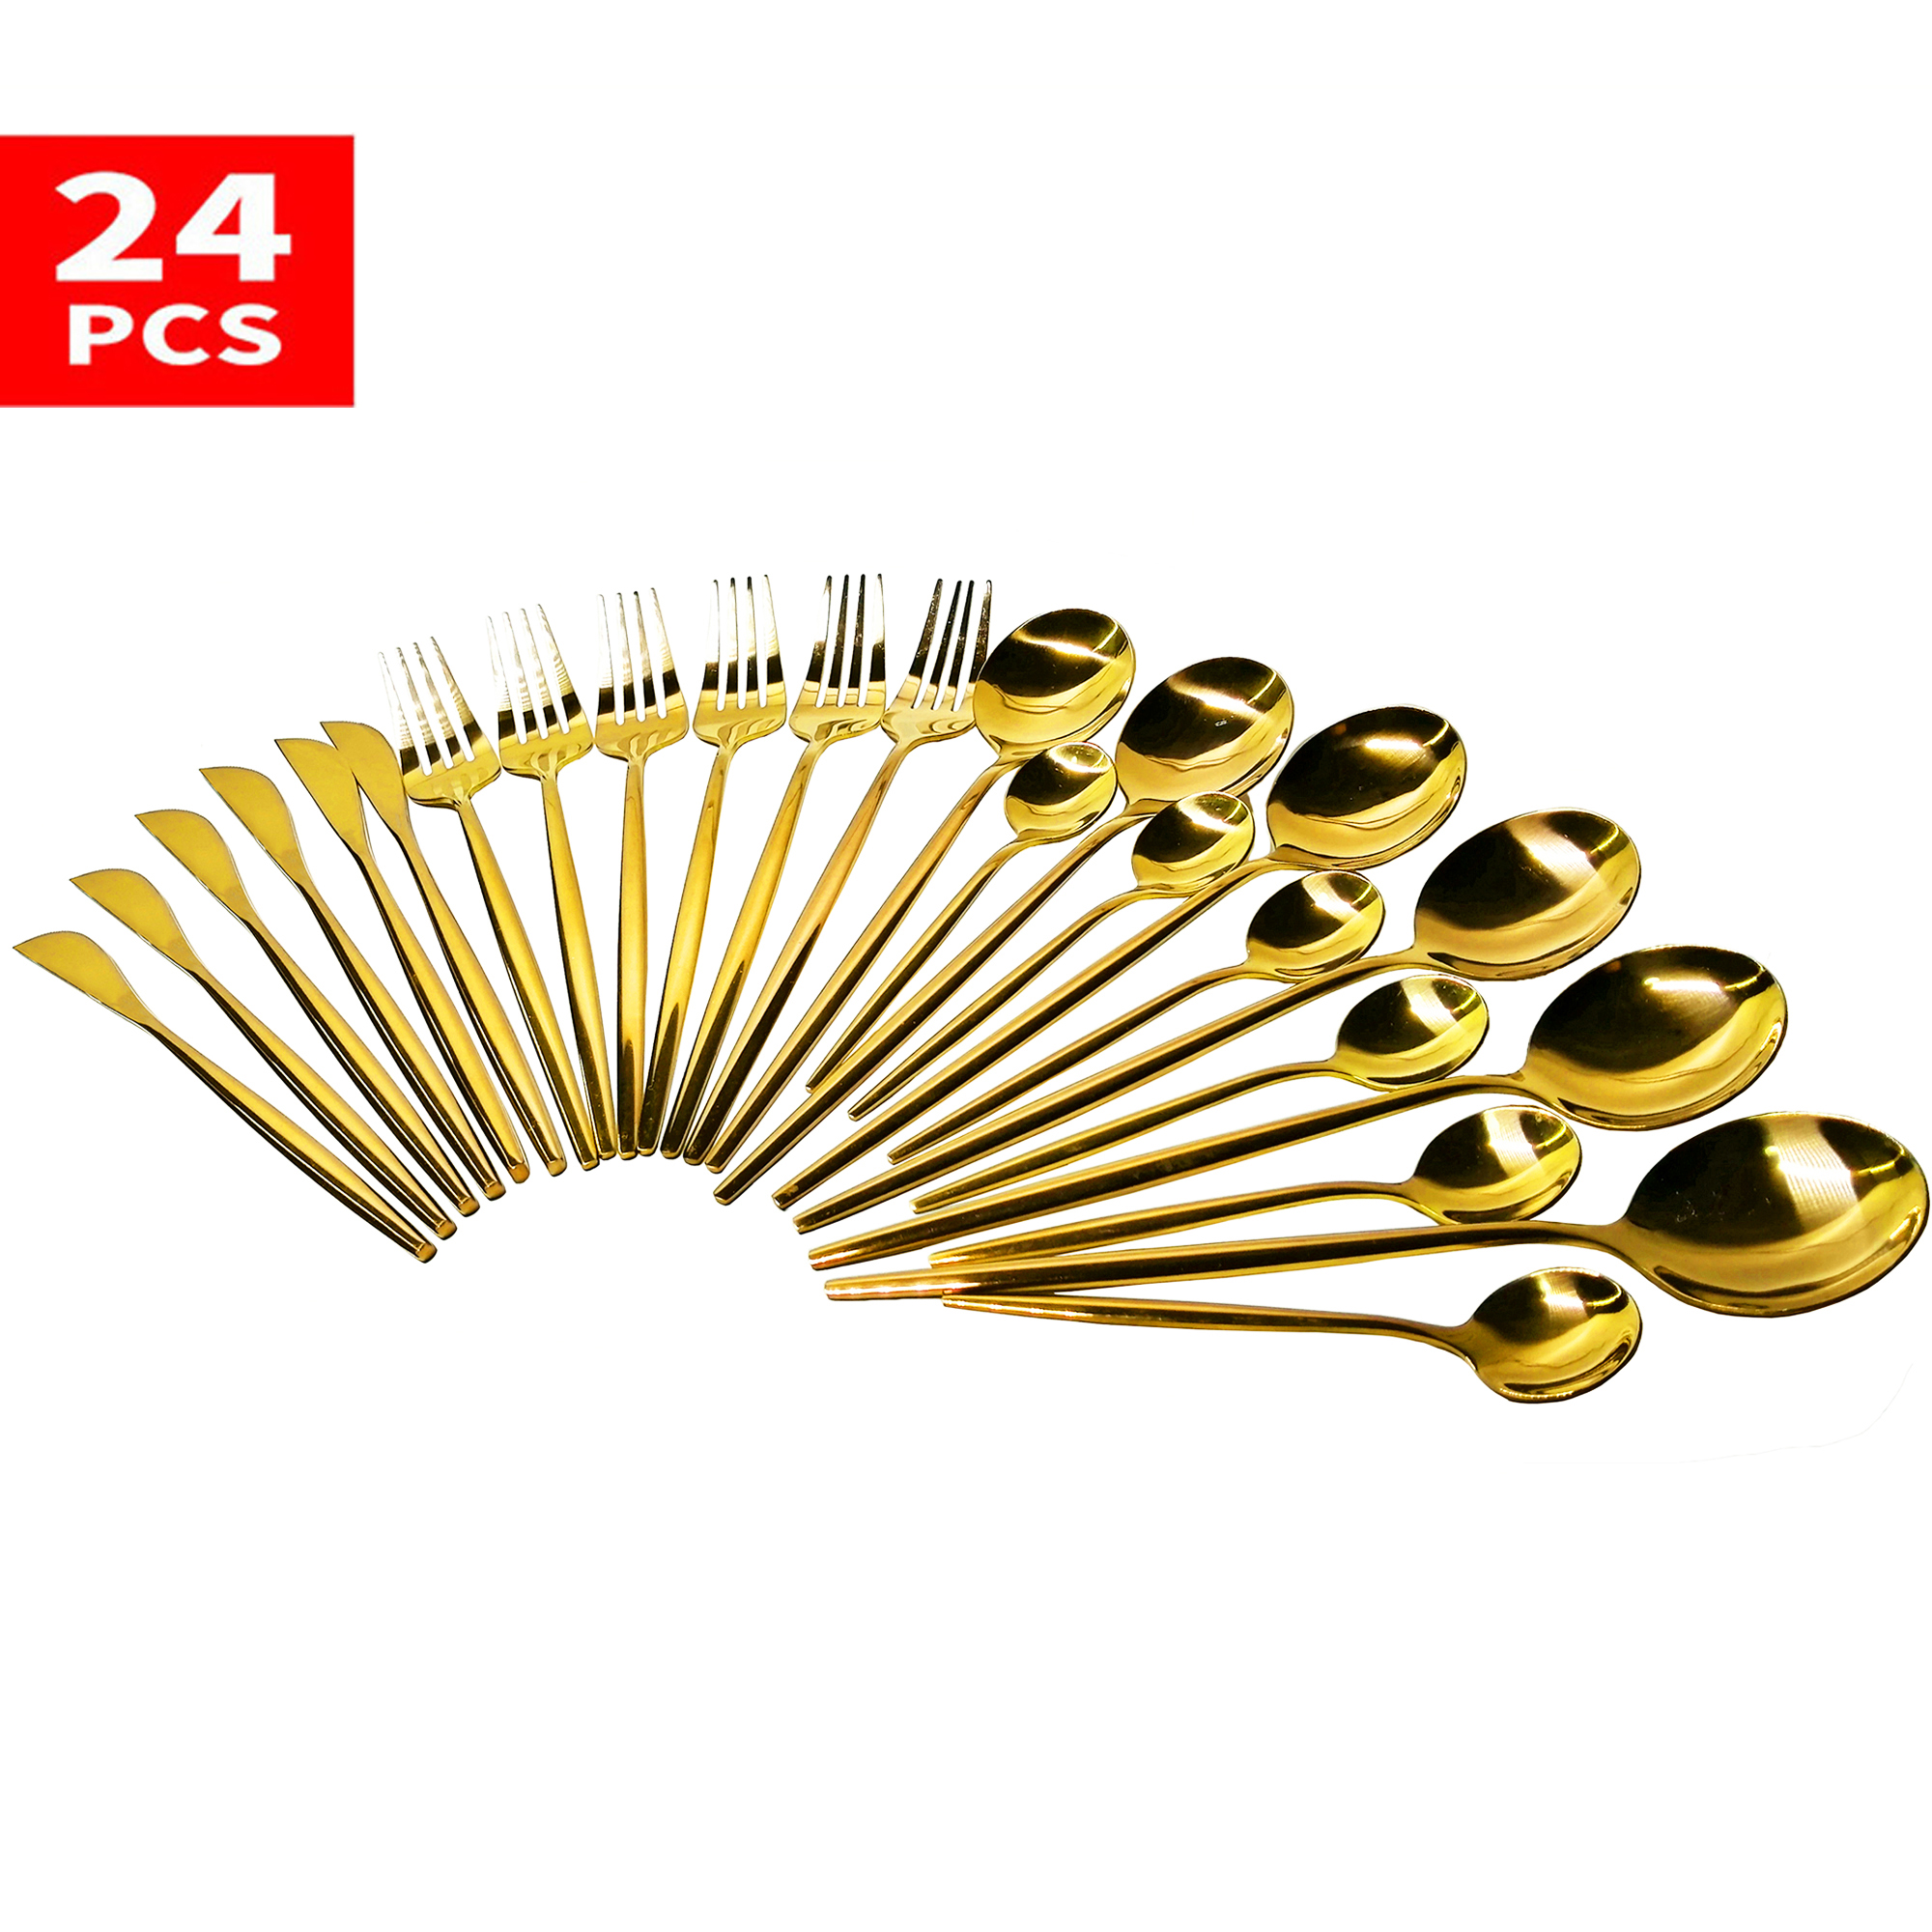 24pcs Cutlery Set Dinnerware Set Tableware Stainless Steel Dinner Set Flatware Tableware Kitchen Silverware